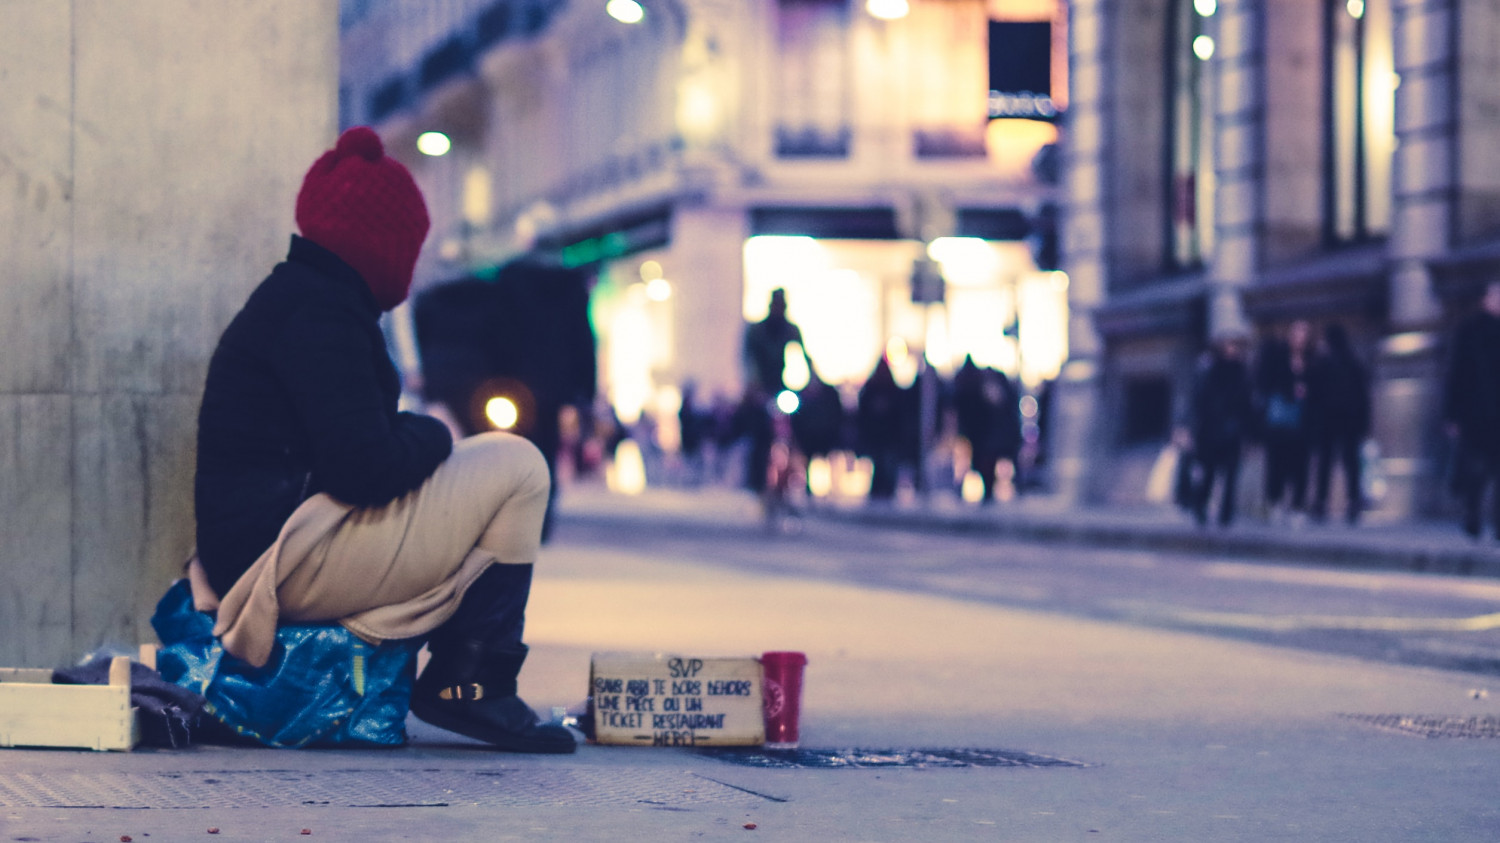 Image of a homeless woman seated on a cardboard box in a busy highstreet